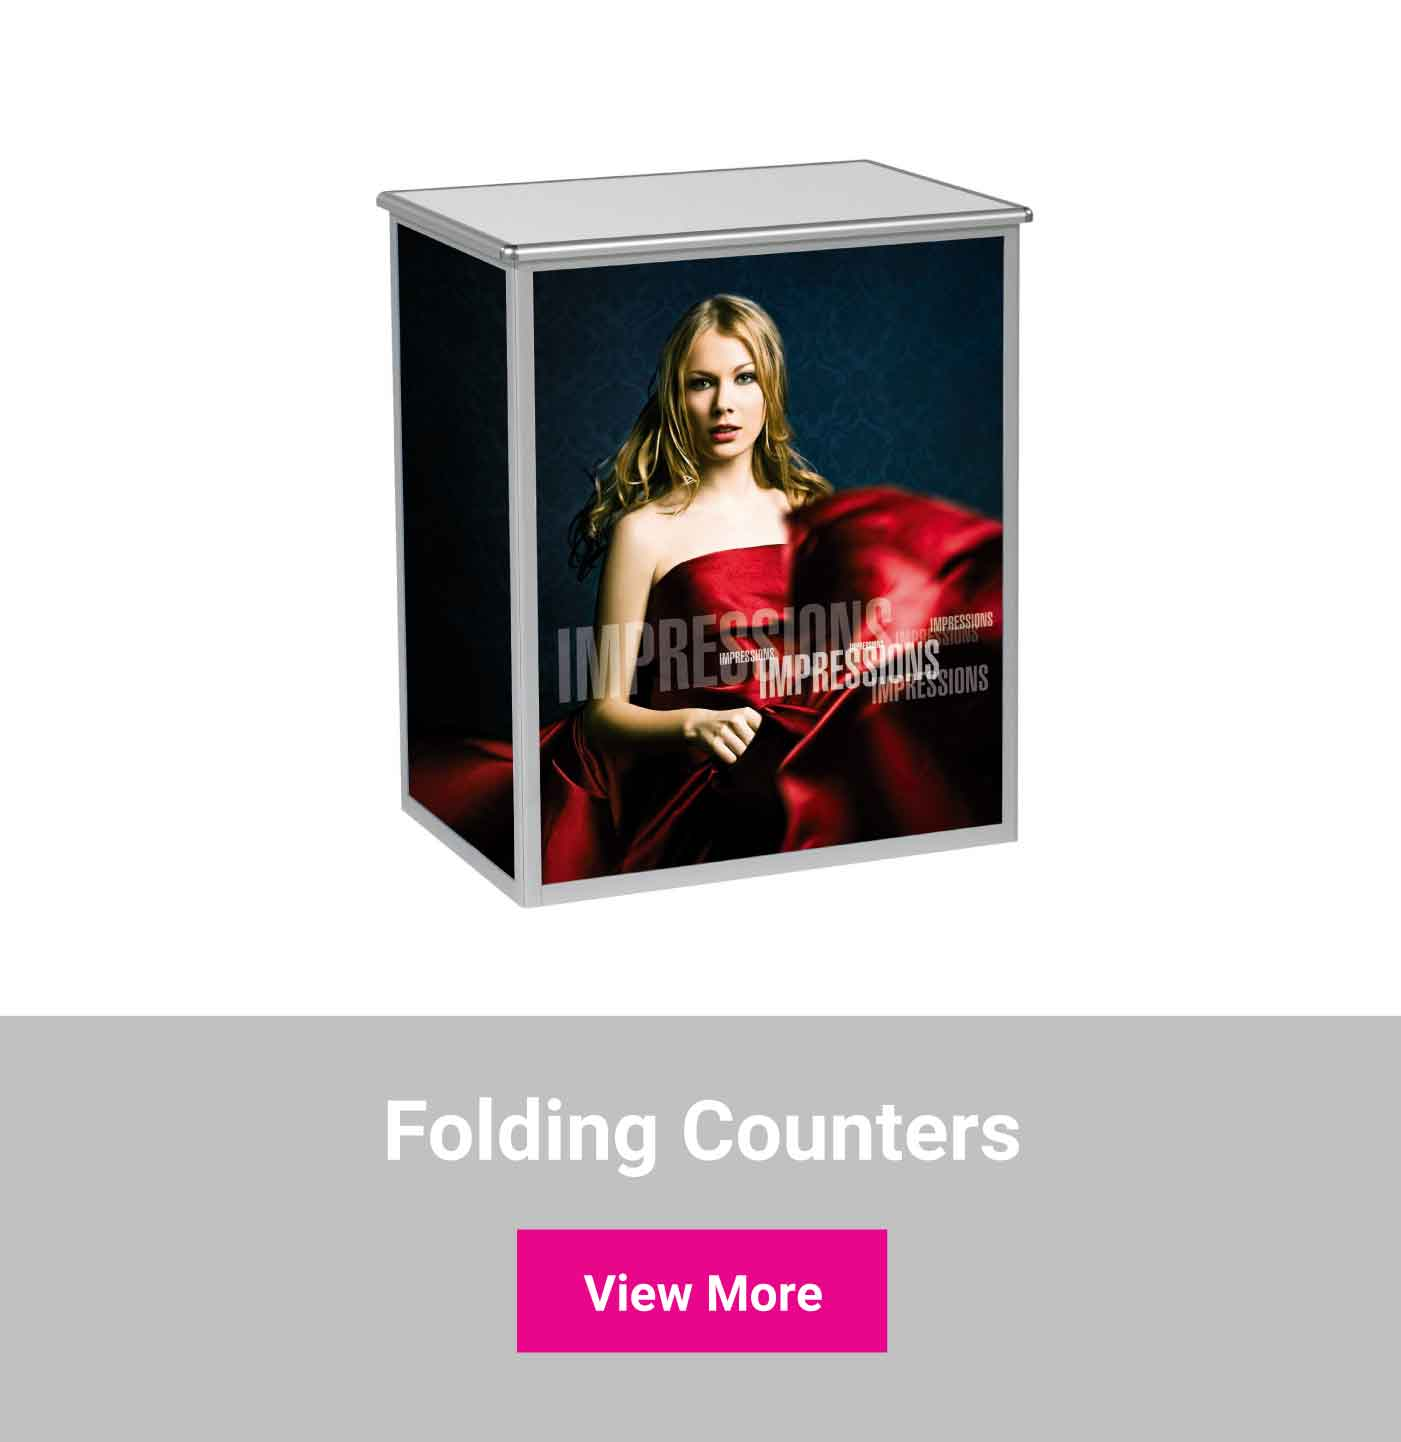 Shop folding counters